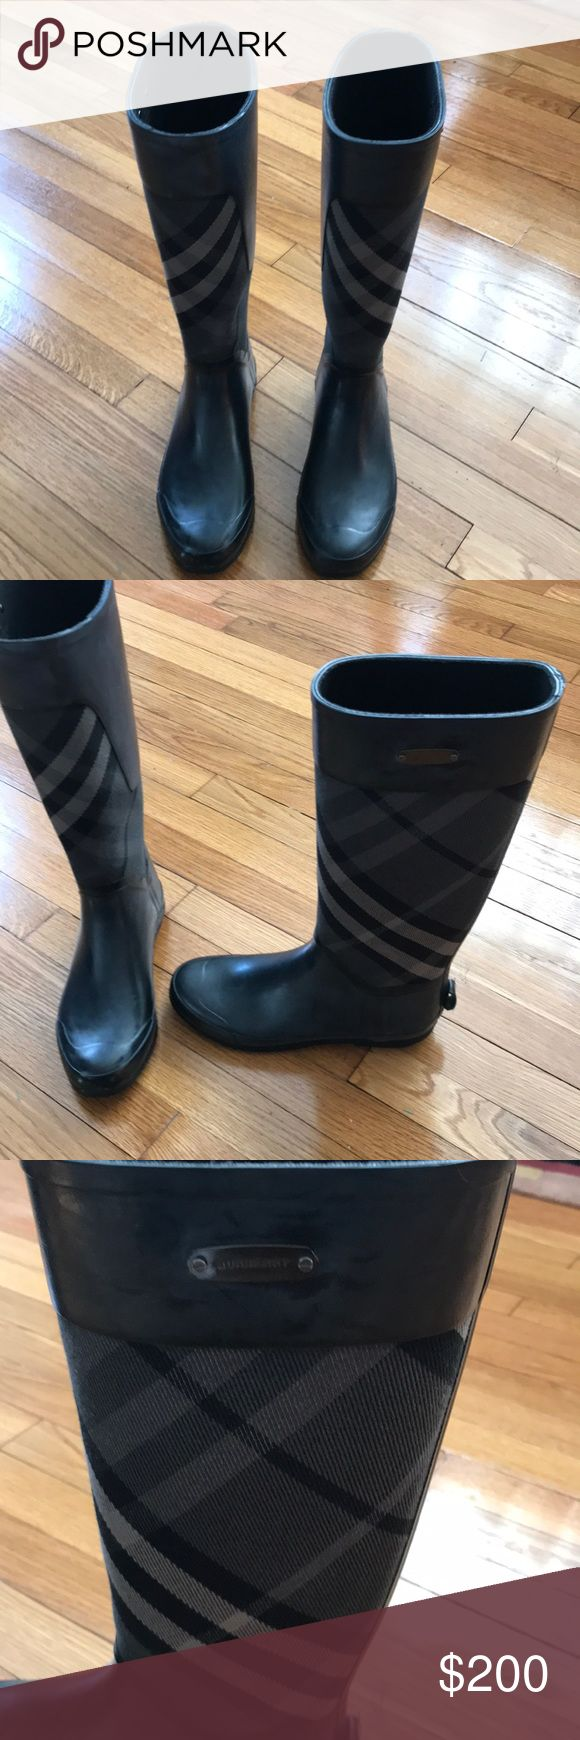 "Burberry clemence rain boots - charcoal Originally purchased from Nordstrom a few years ago, but only worn a handful of times.   Synthetic rubber with signature Burberry check on the coated cotton center  Burberry metal plate on outside leg 3/4"" flat heel Approximately 15"" shaft with 16"" top circumference  These run small - I am normally a size 8 Burberry Shoes Winter & Rain Boots"